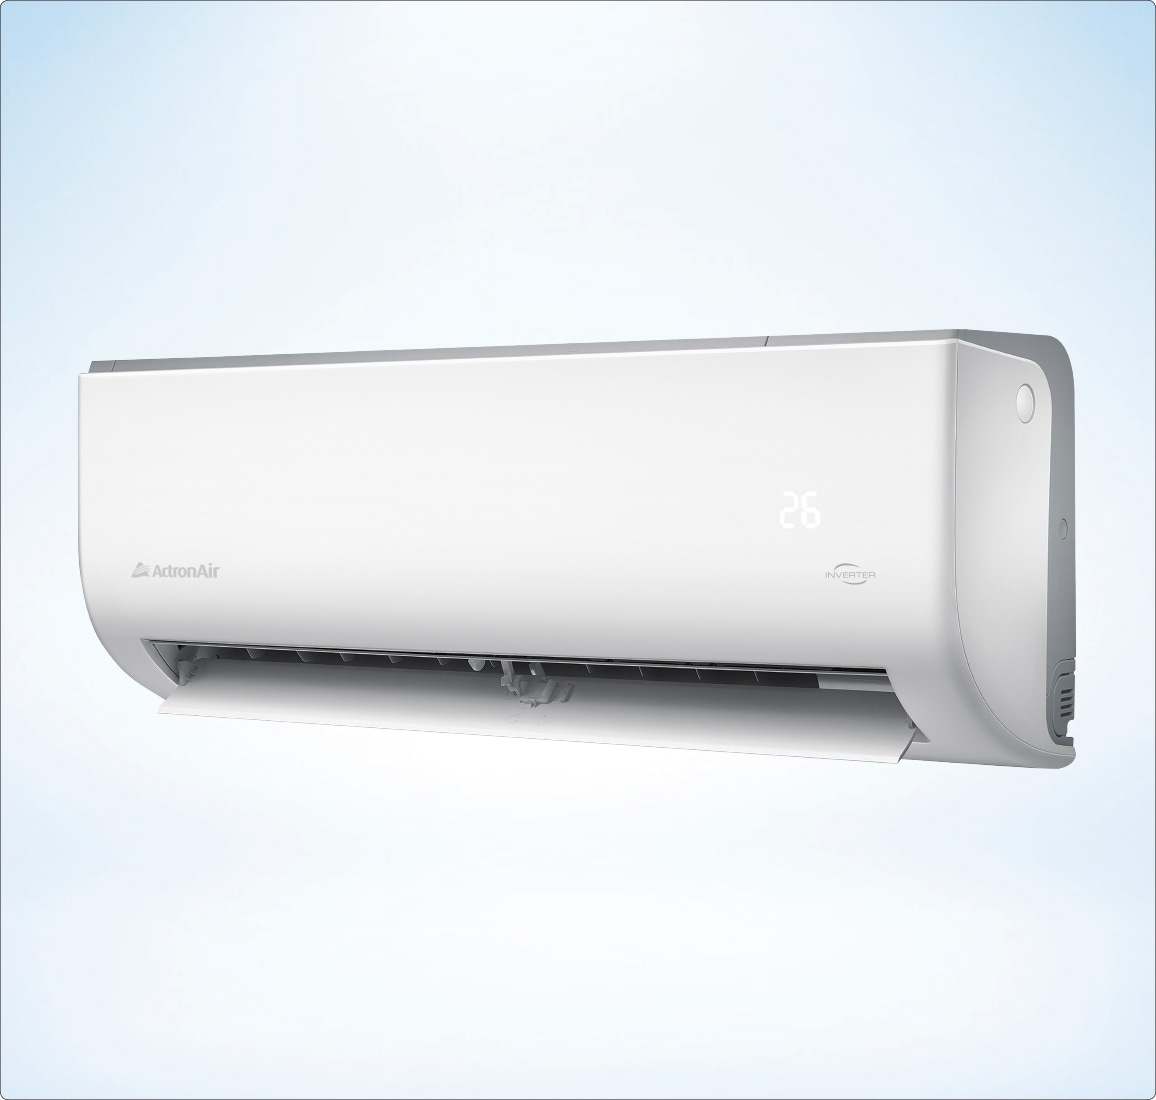 #436688 RPS Air Conditioning Services Commercial Air  Recommended 8197 Air Conditioner Installers Sydney Australia pics with 1156x1100 px on helpvideos.info - Air Conditioners, Air Coolers and more